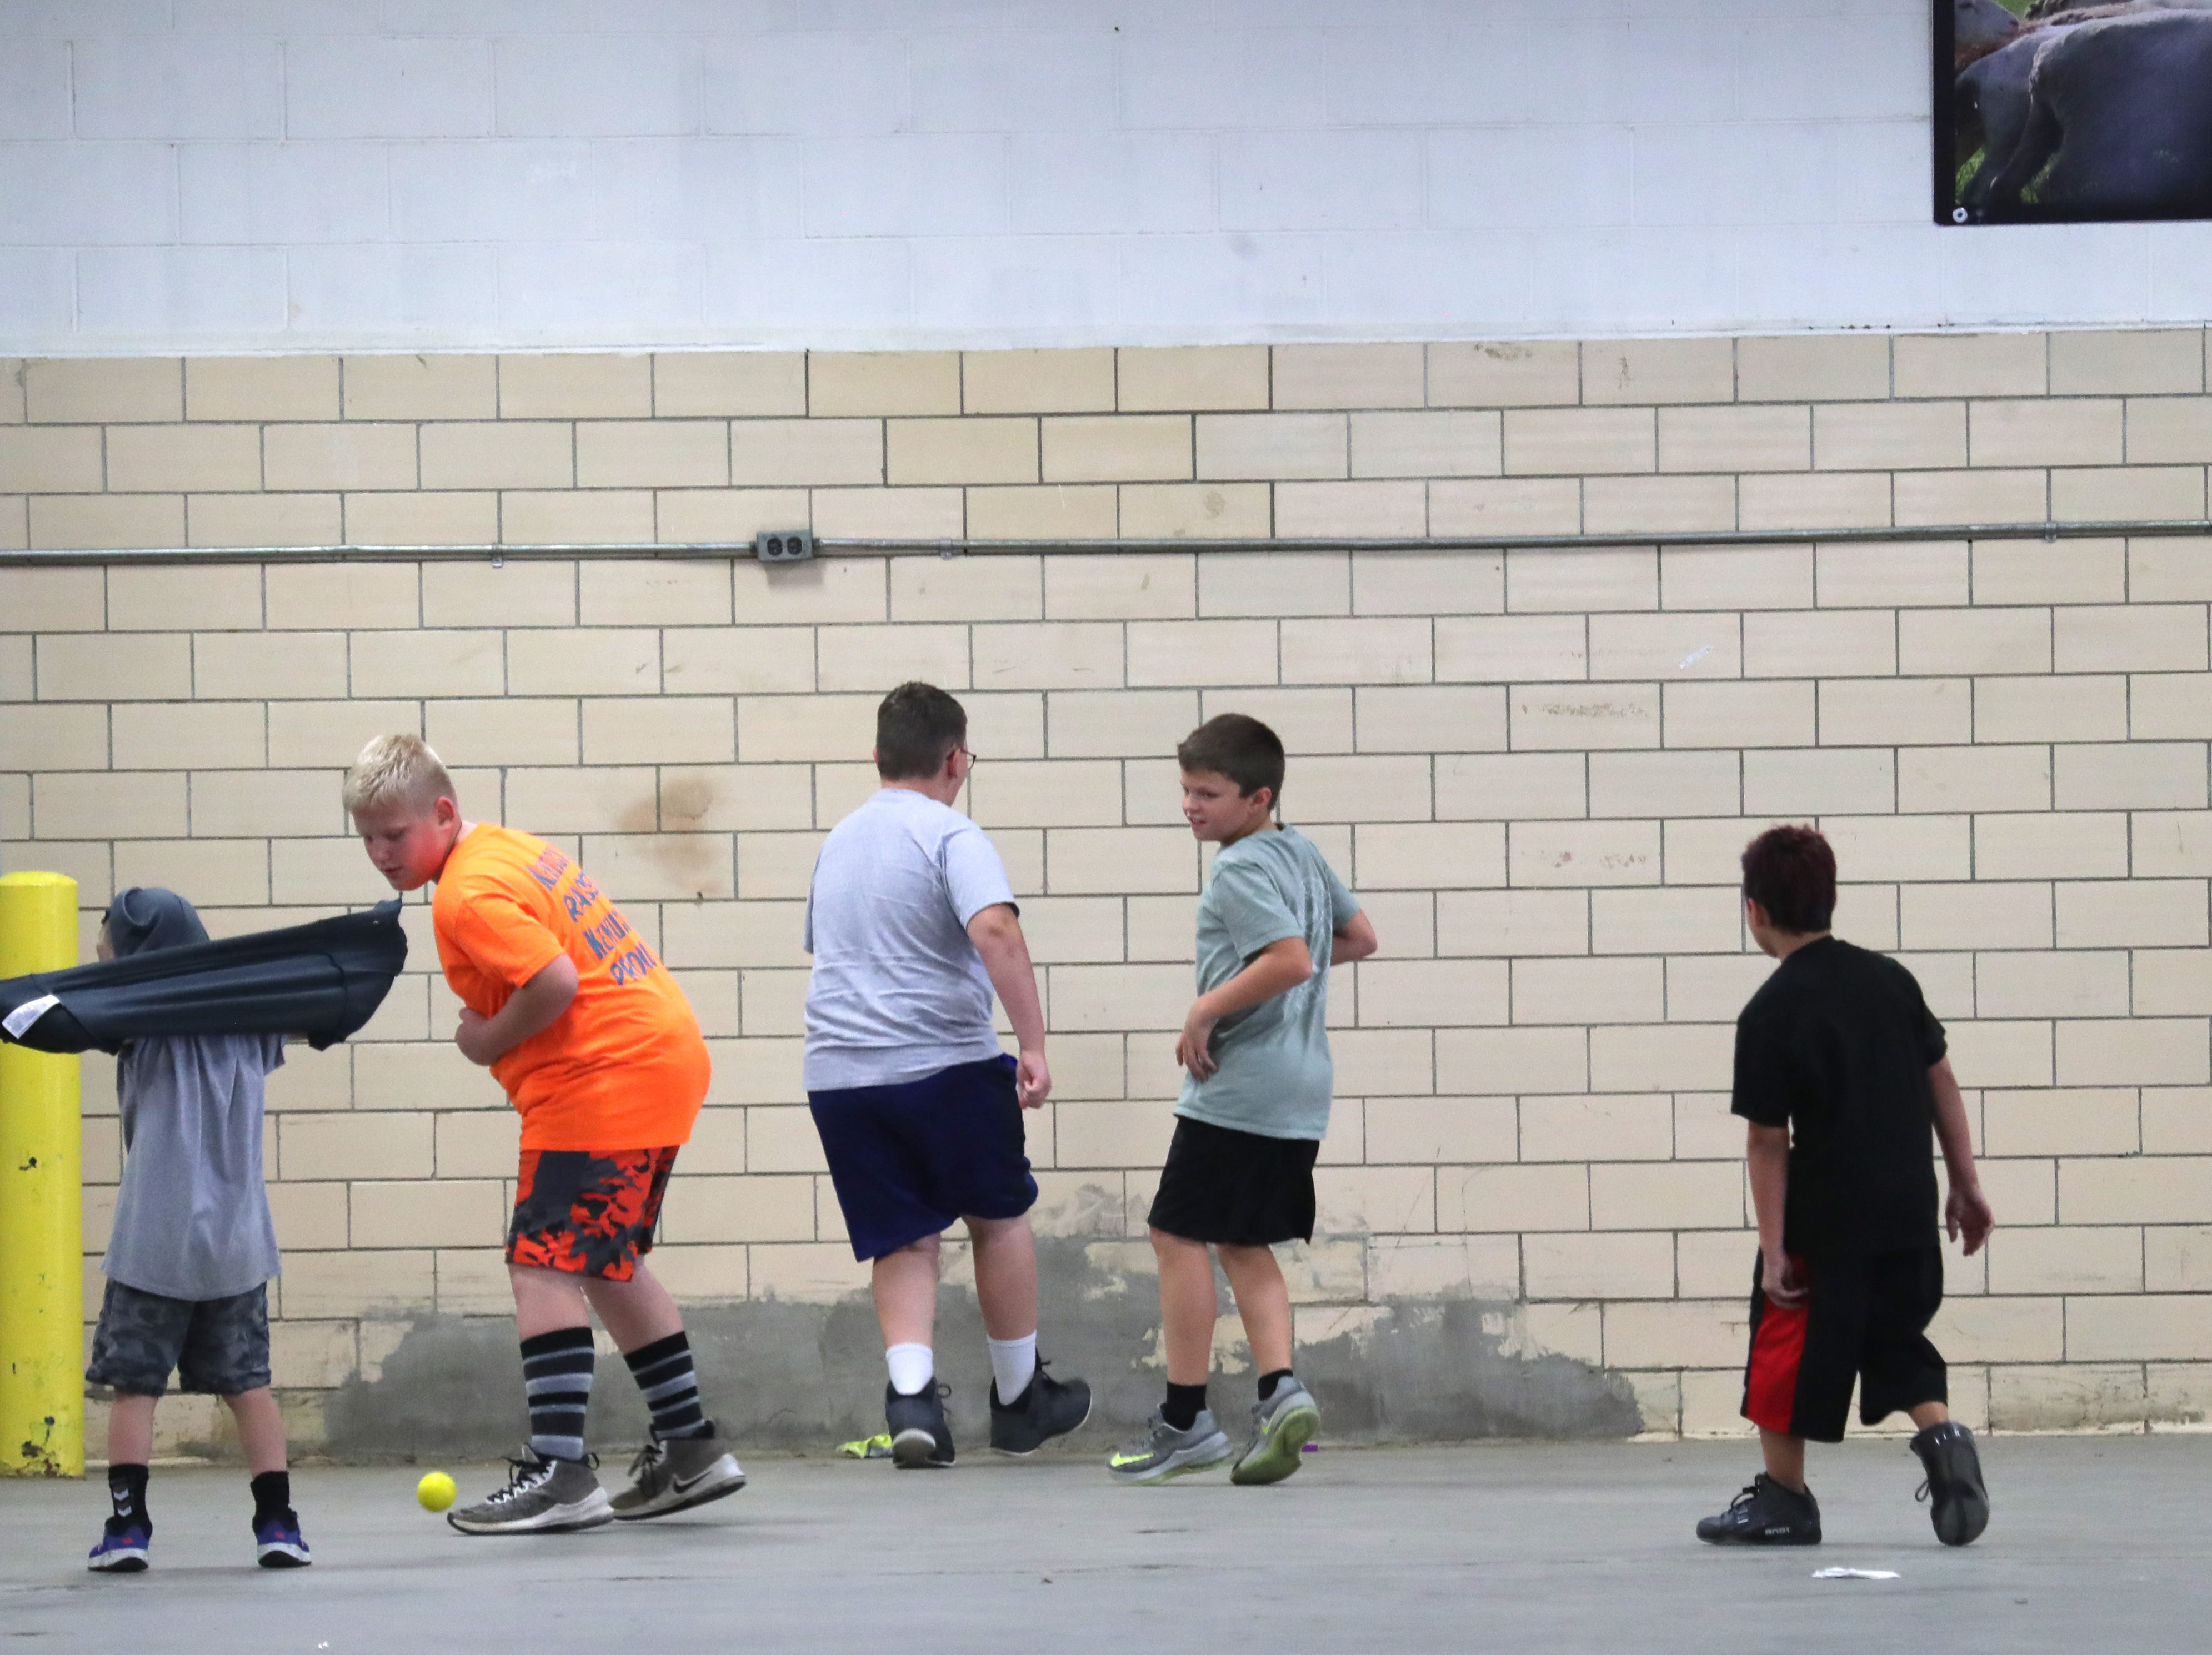 Kids find a ball and a wall to entertain themselves in the livestock area of the Kentucky State Fair.